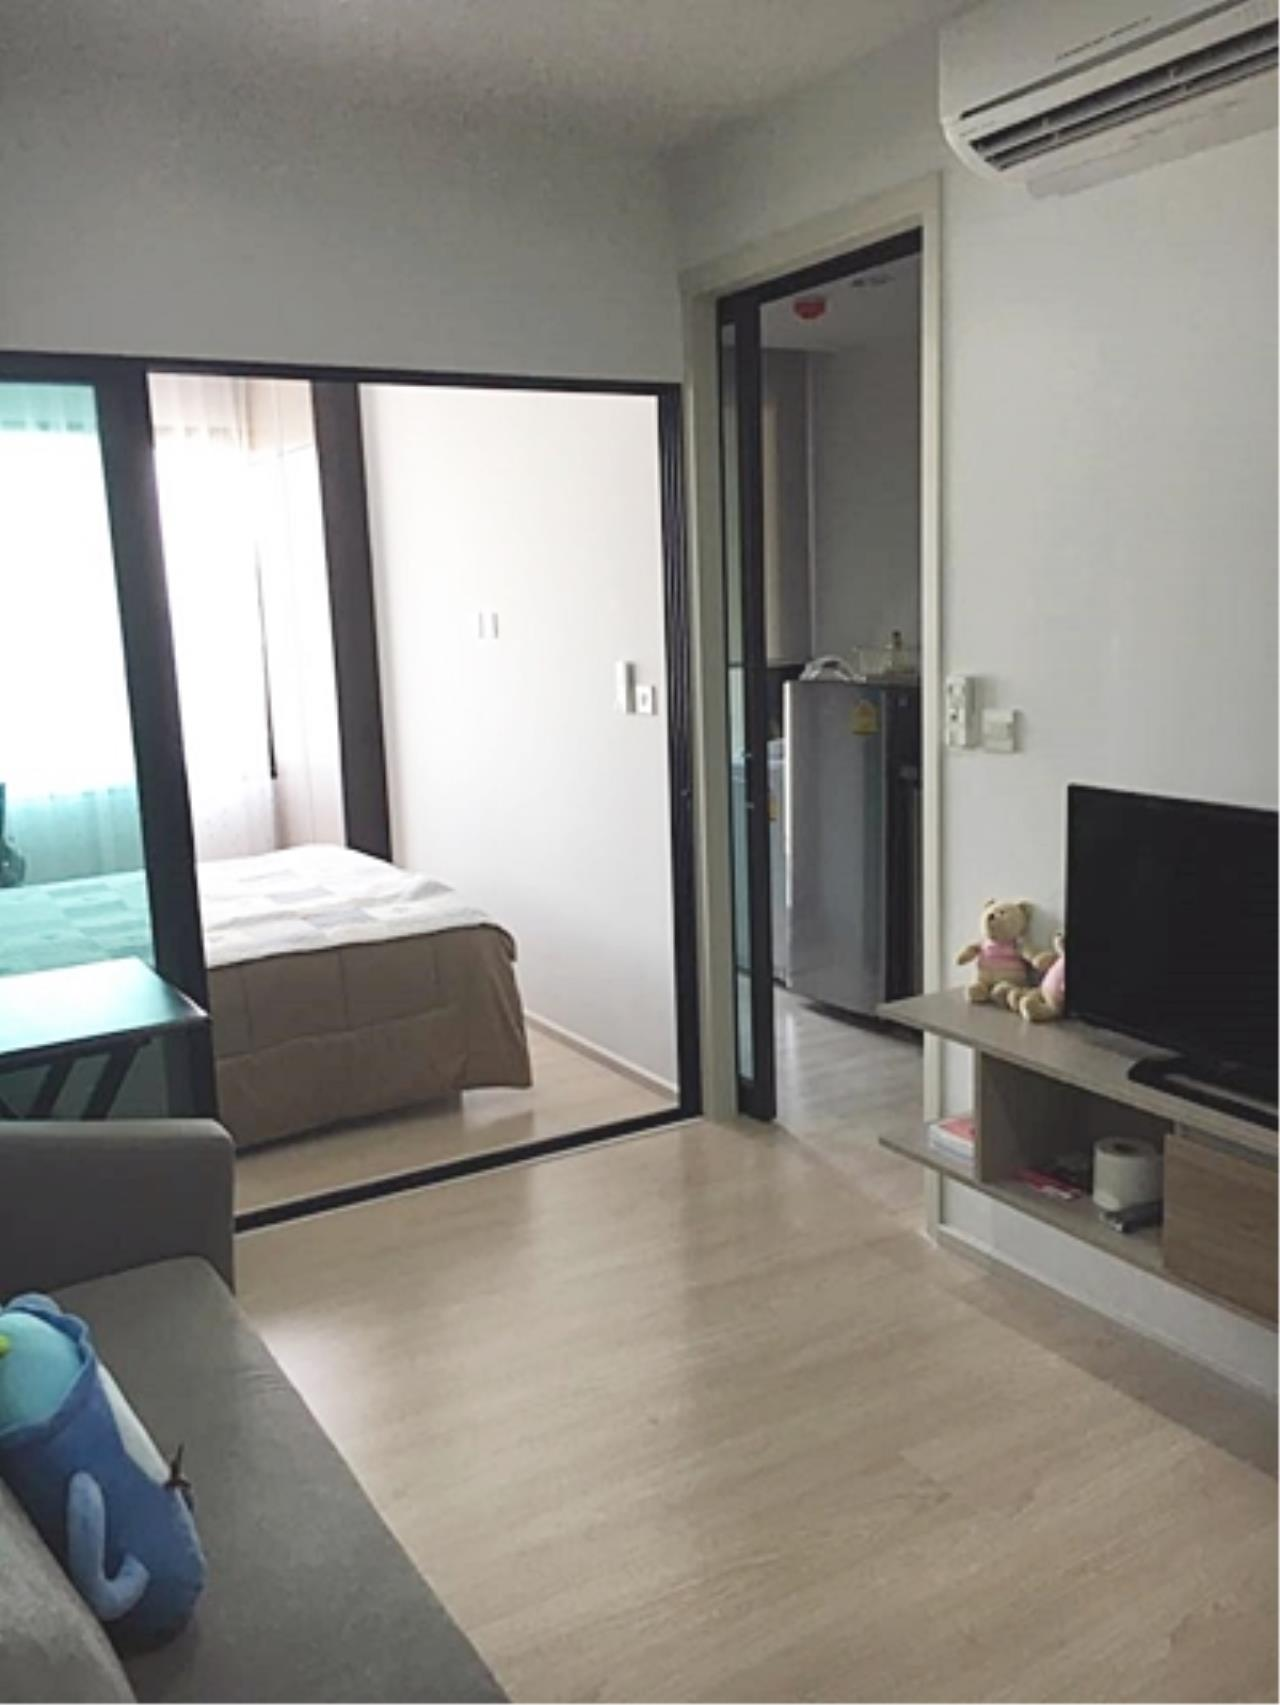 Estate Corner Agency (Samut Prakan) Agency's Condo for sale, The Gallery Bearing from BTS only 500 meters, fully furnished. 1